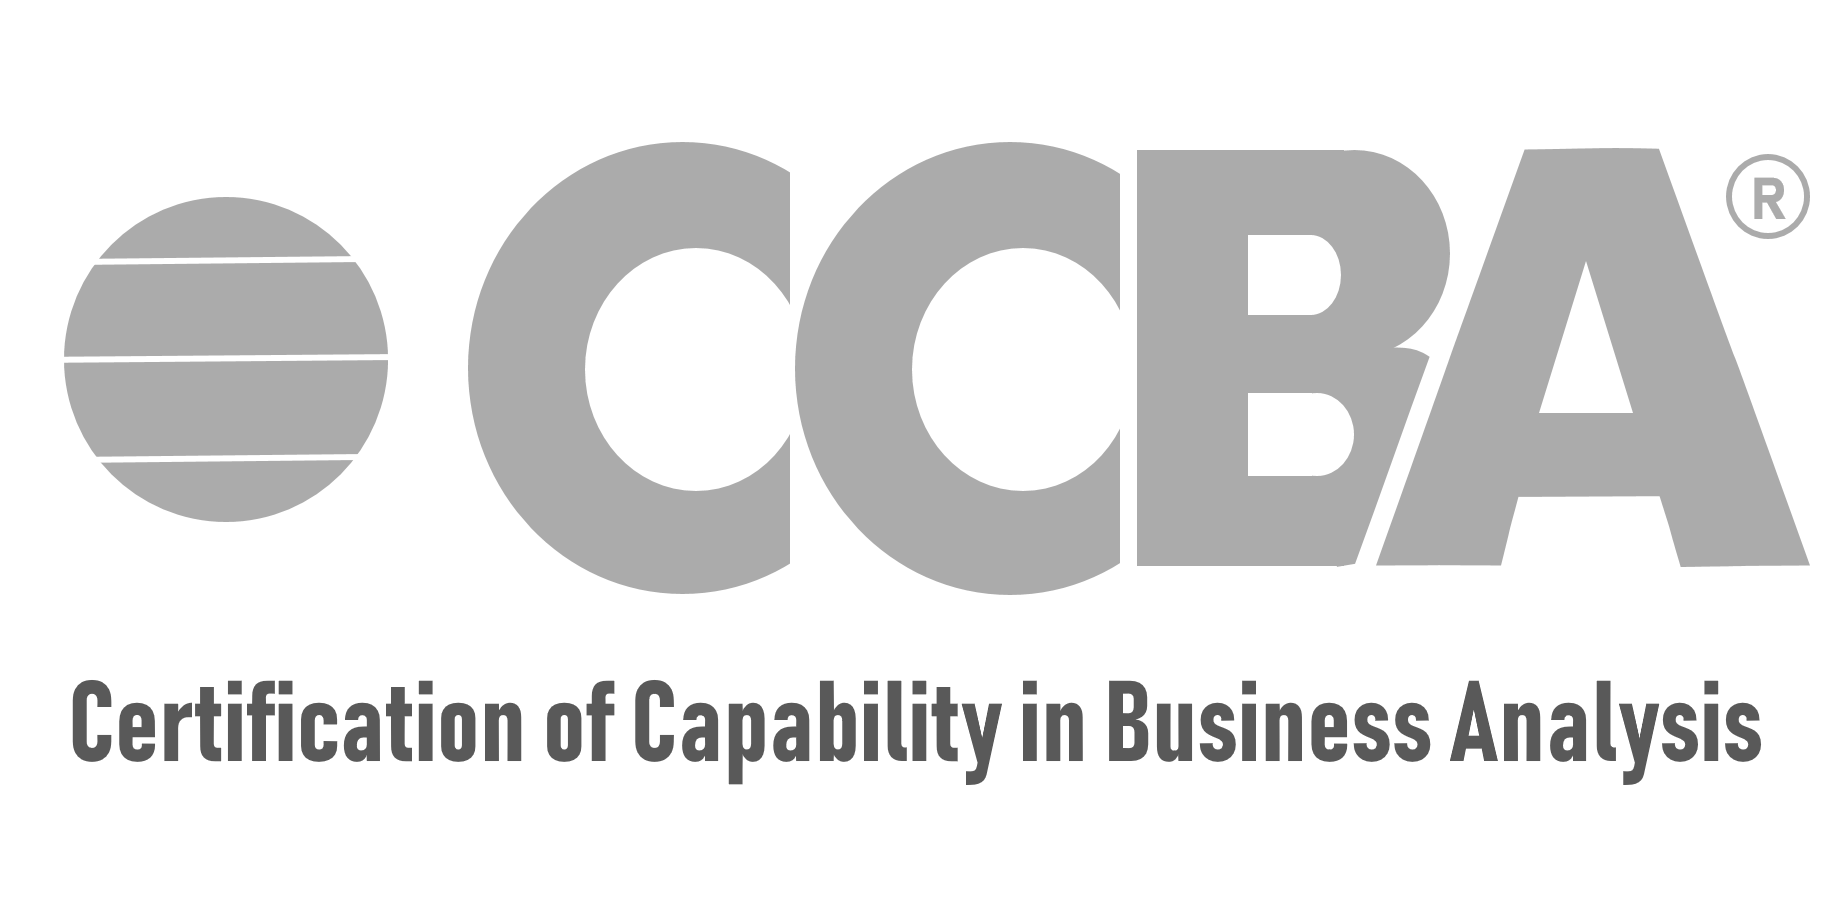 CCBA, Certification of Capability in Business